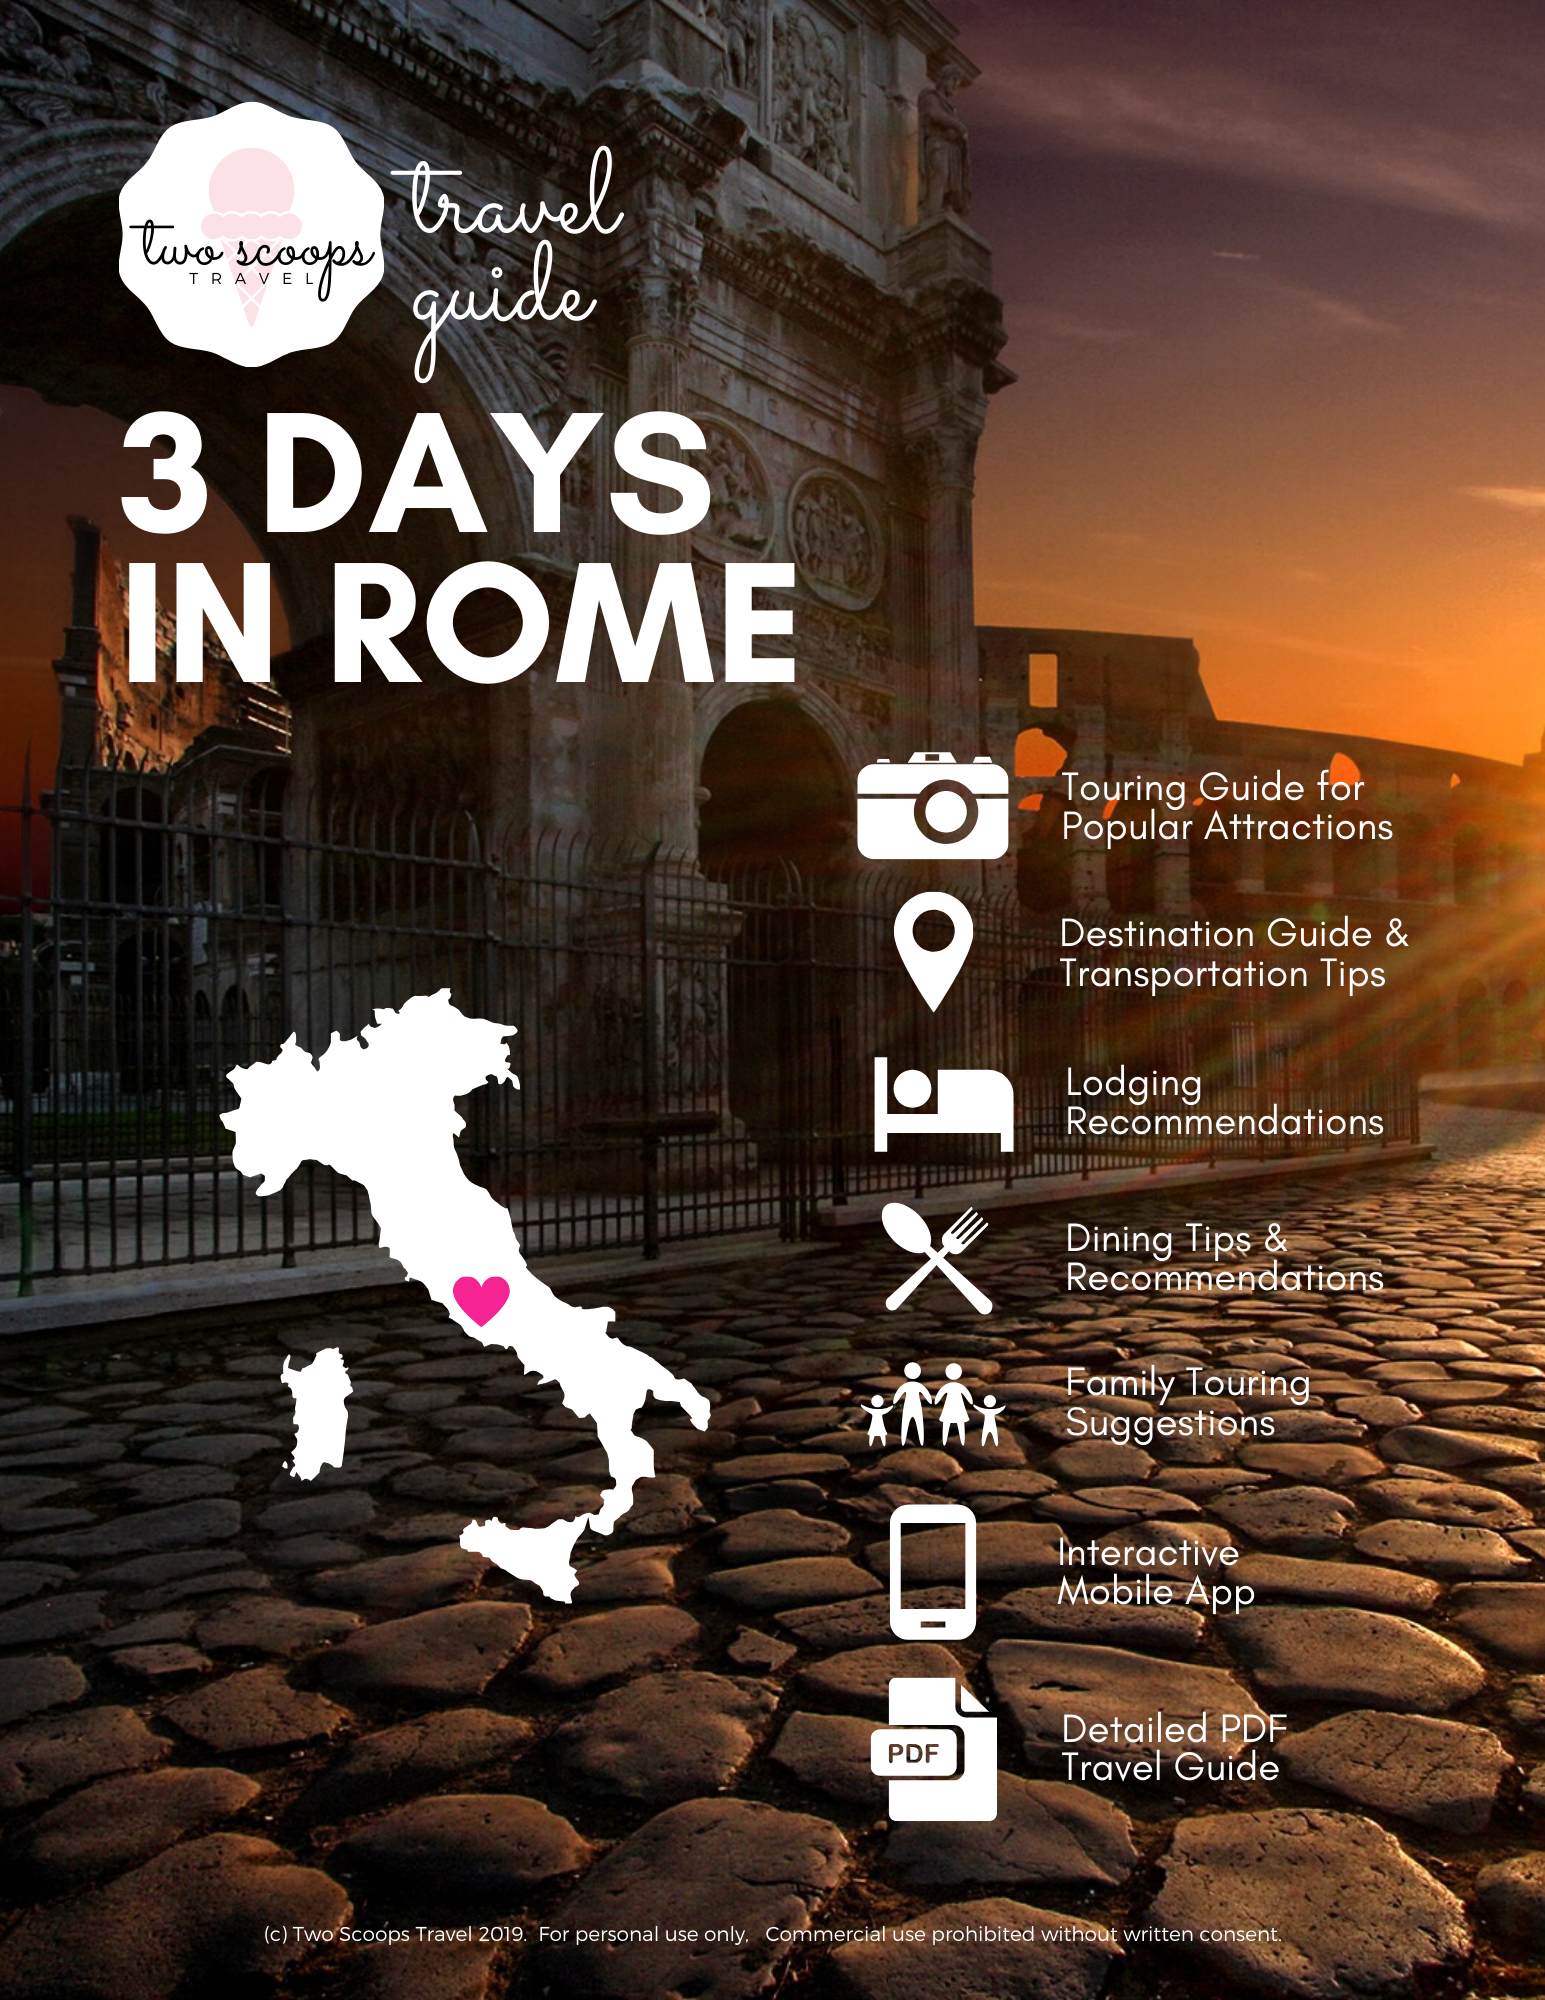 20 Days in Rome Travel Guide   Rome travel guide, Rome travel ...